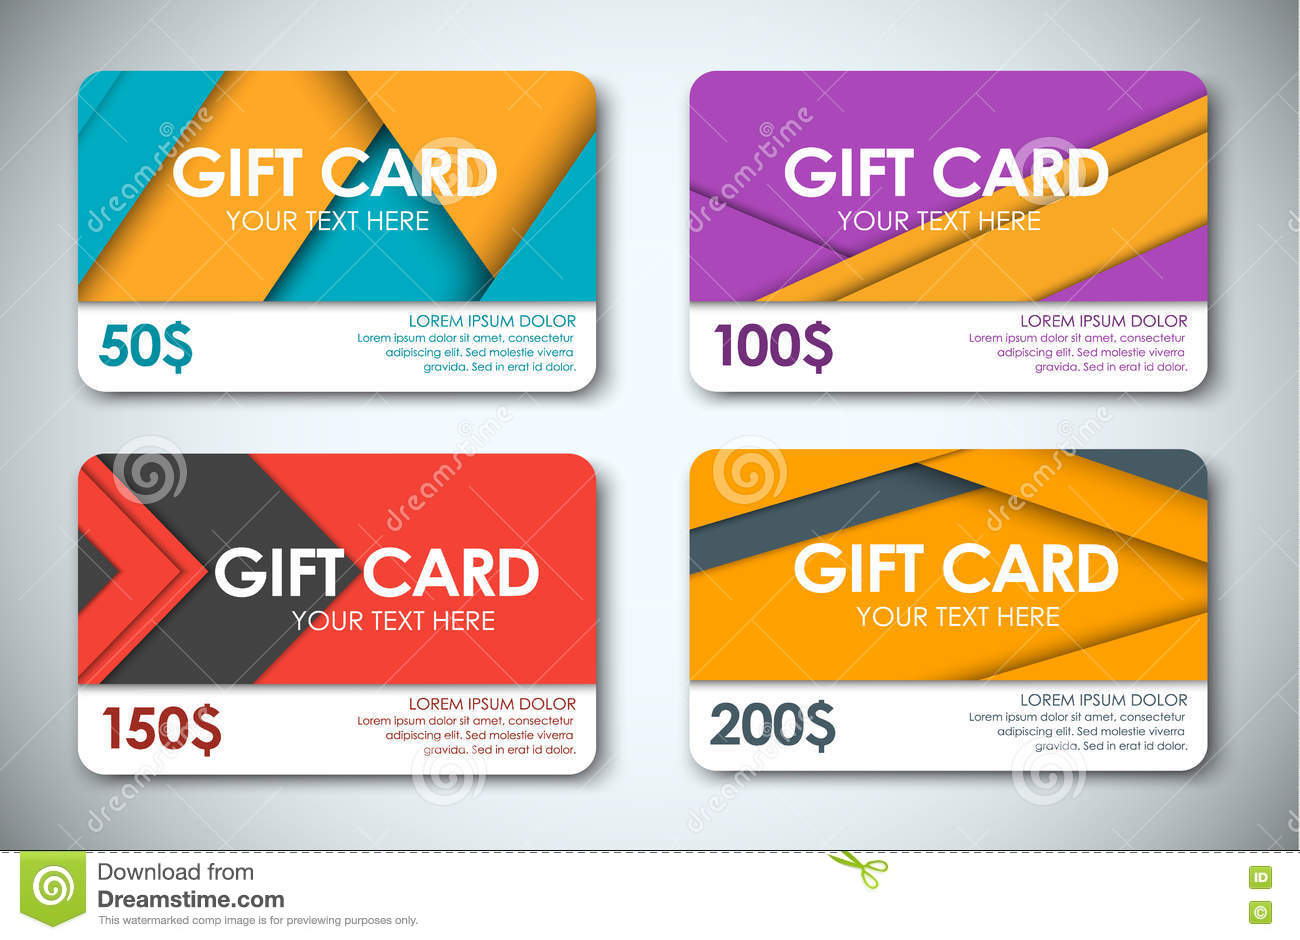 Design of discount card - Set Of Gift Cards In The Style Of The Material Design Royalty Free Stock Photos